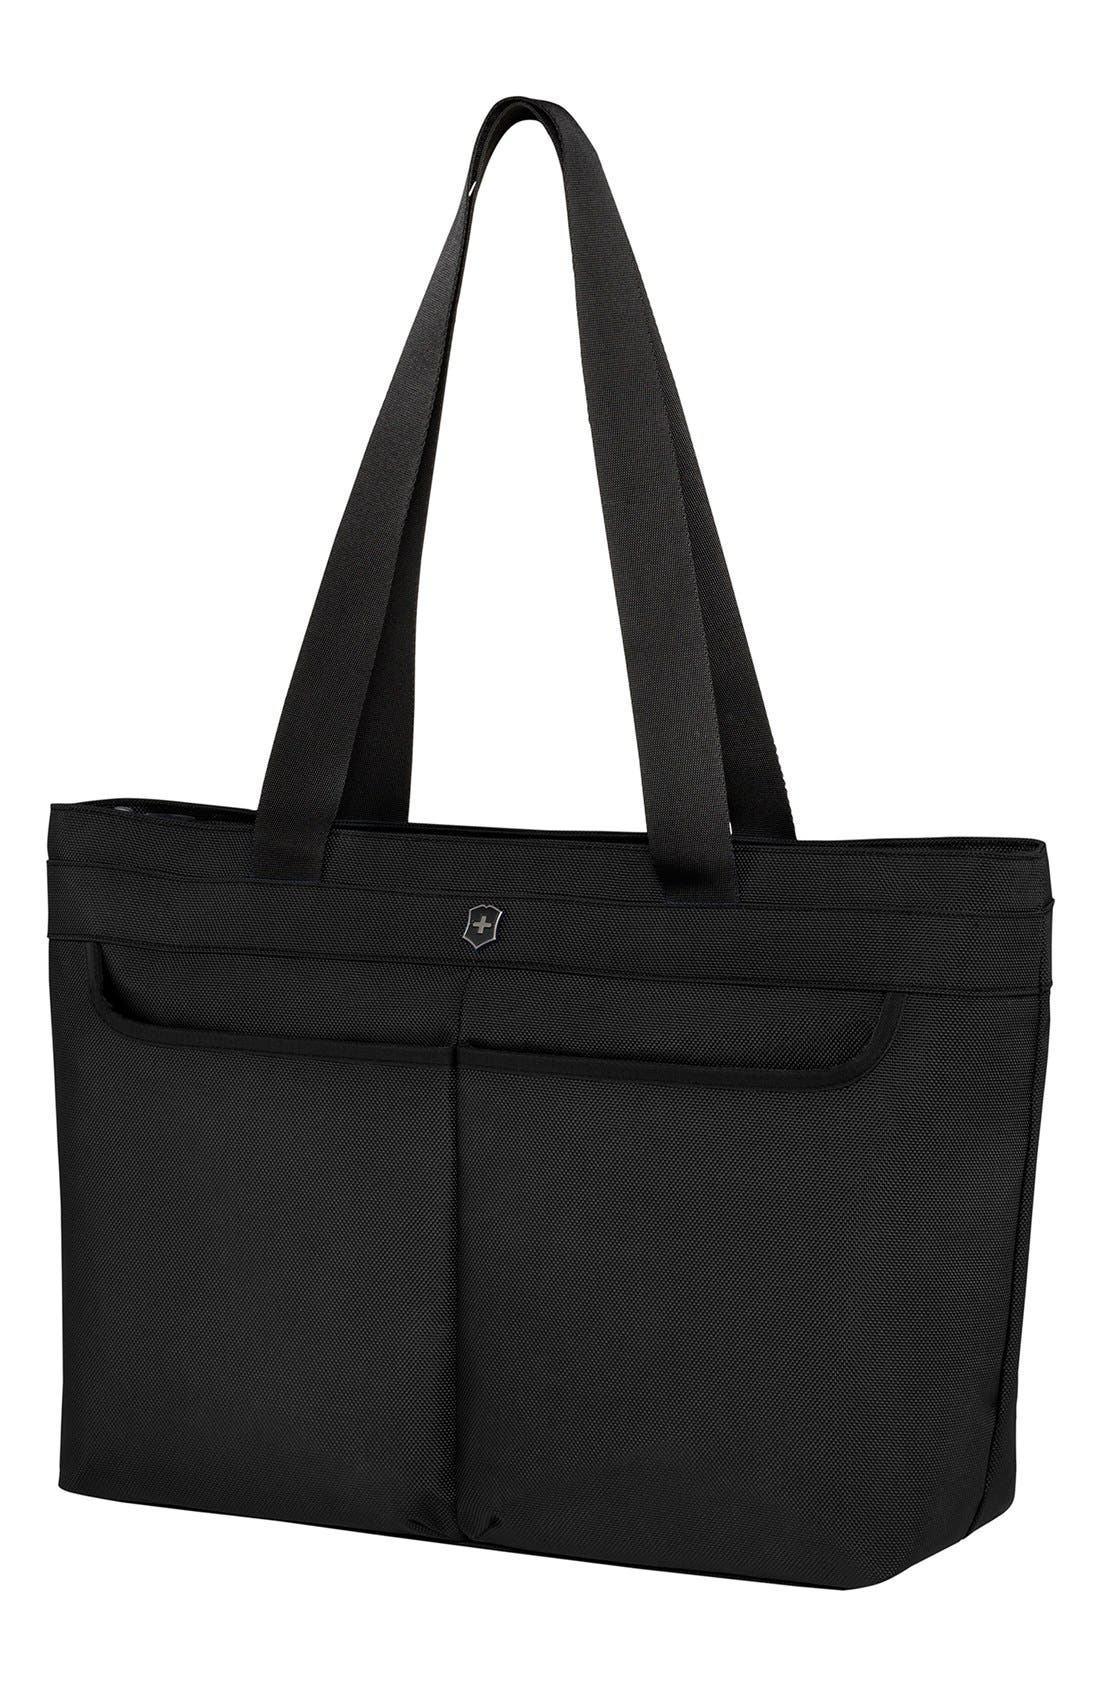 Alternate Image 1 Selected - Victorinox Swiss Army® WT 5.0 Shopping Tote